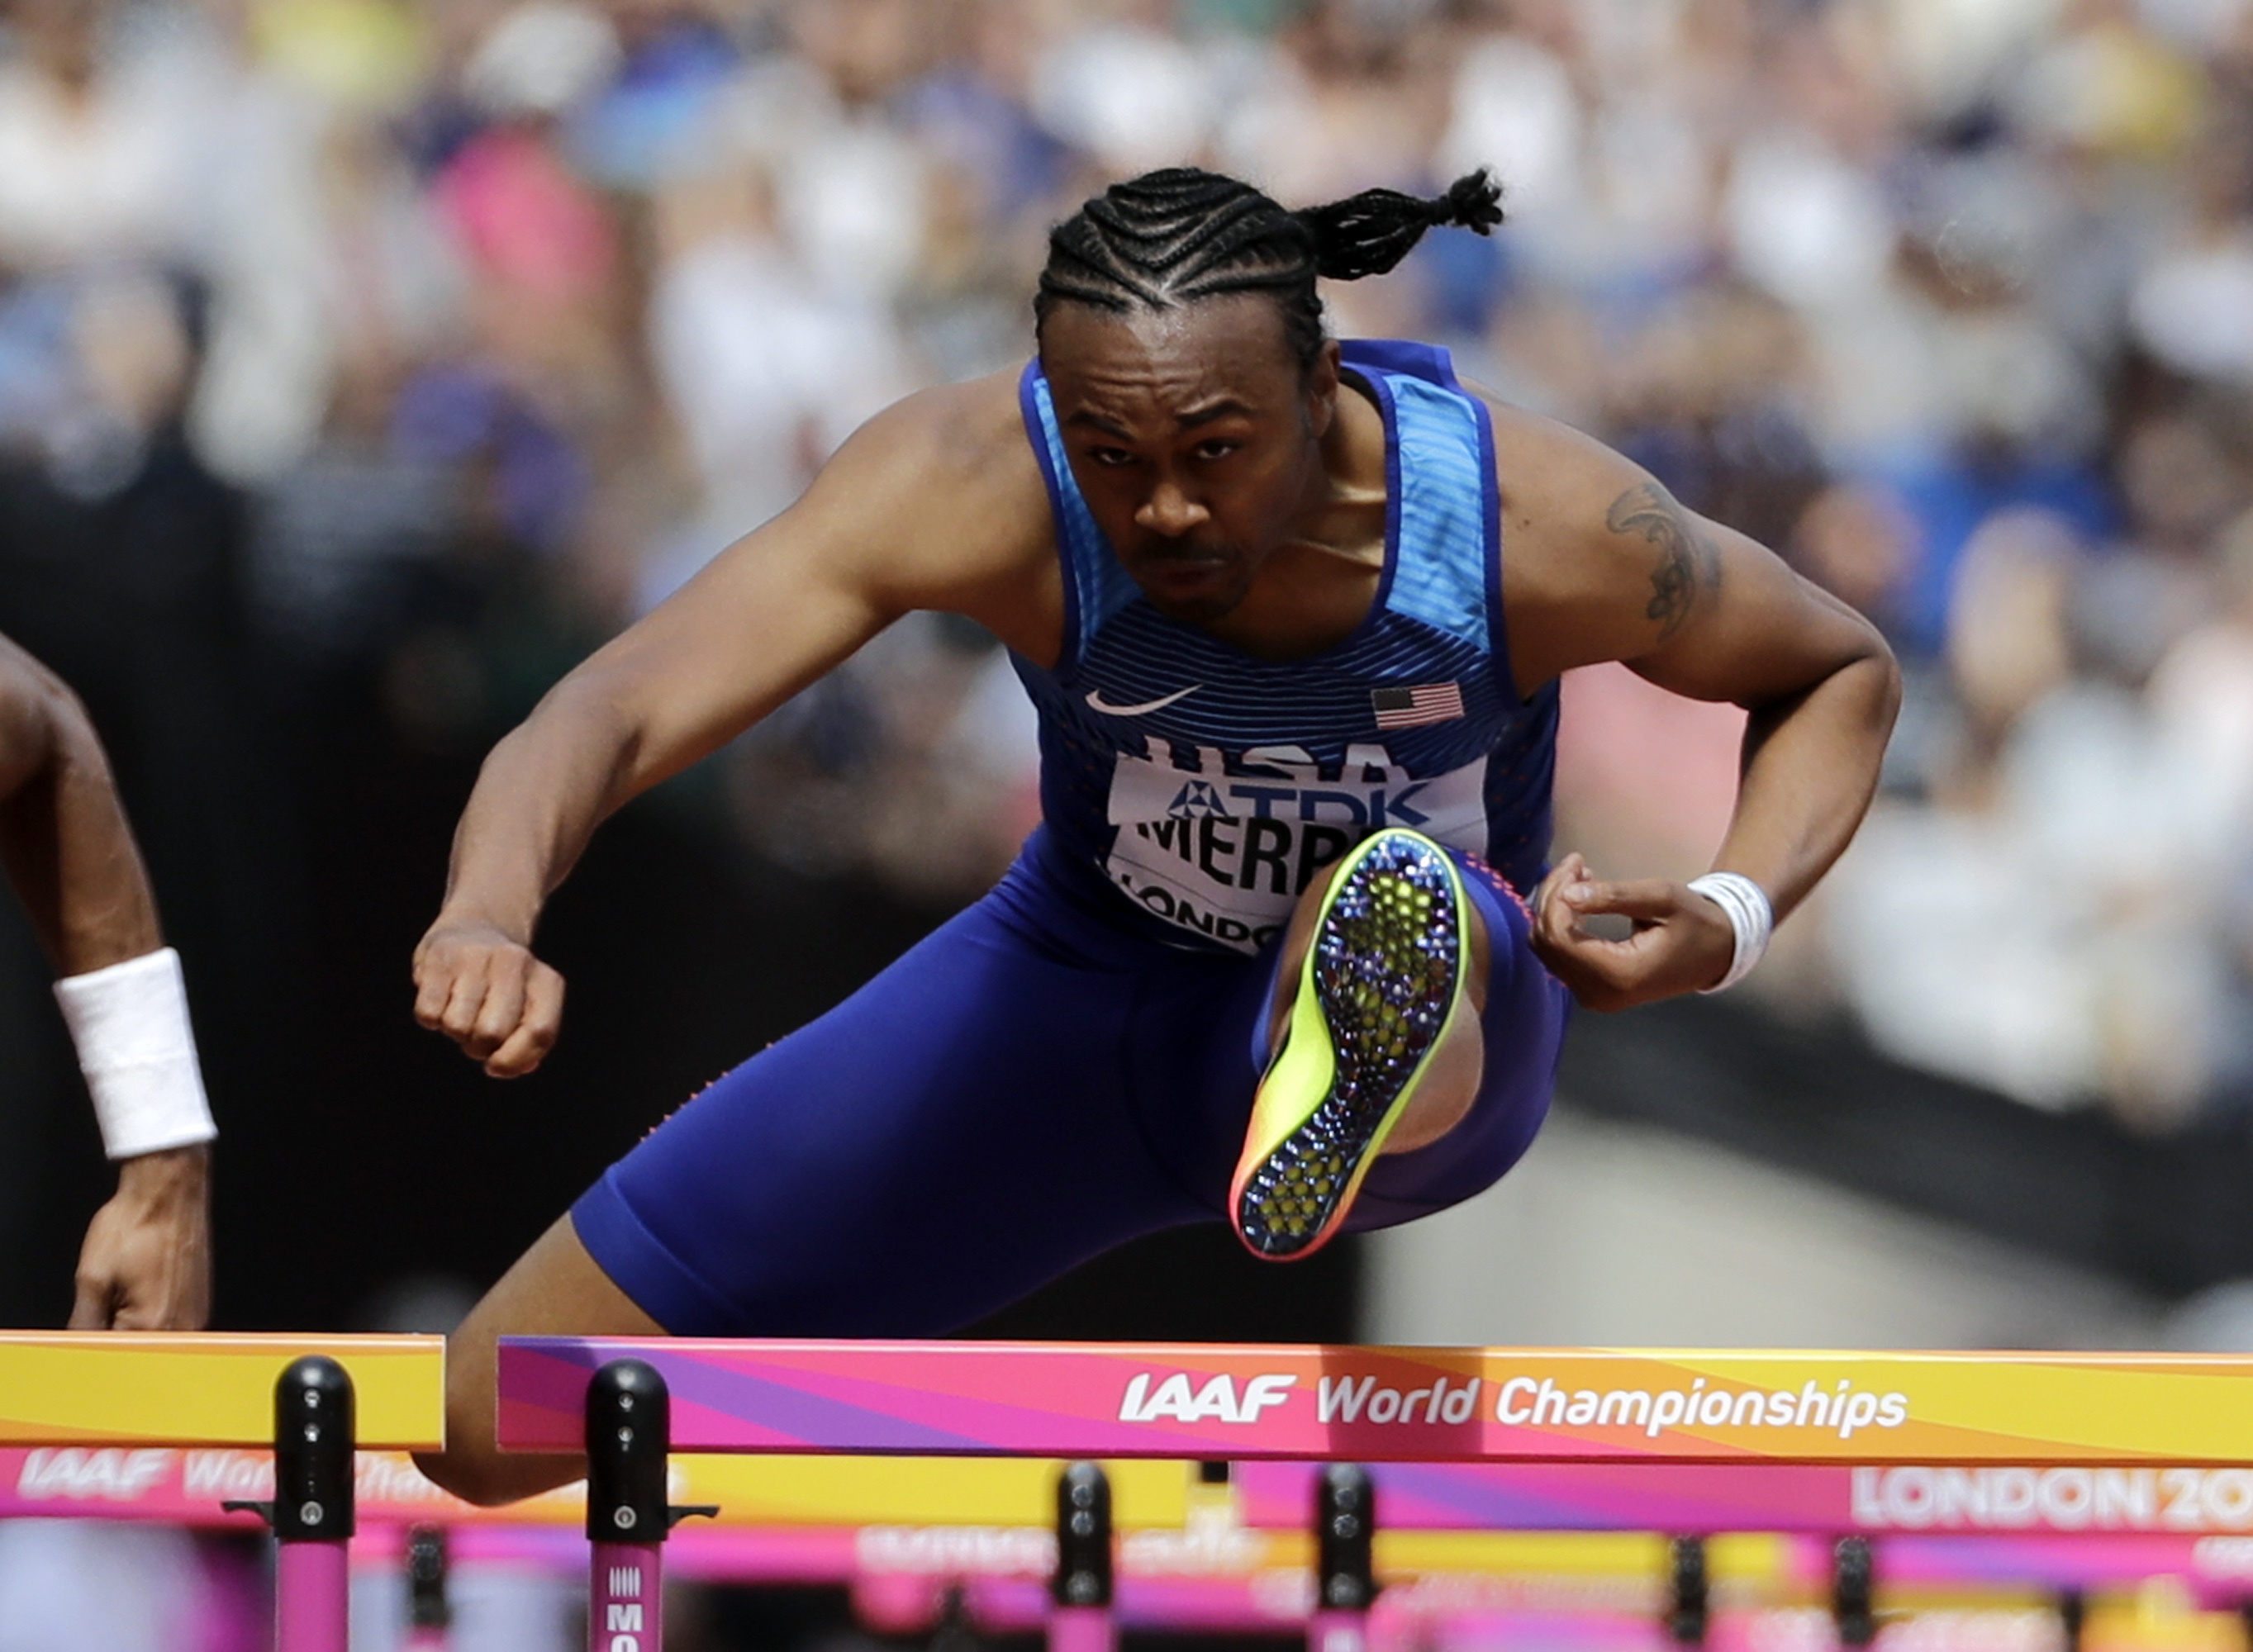 United States' Aries Merritt competes in a men's 110-meter hurdles first round heat during the World Athletics Championships in London Sunday, Aug. 6, 2017. (AP Photo/David J. Phillip)